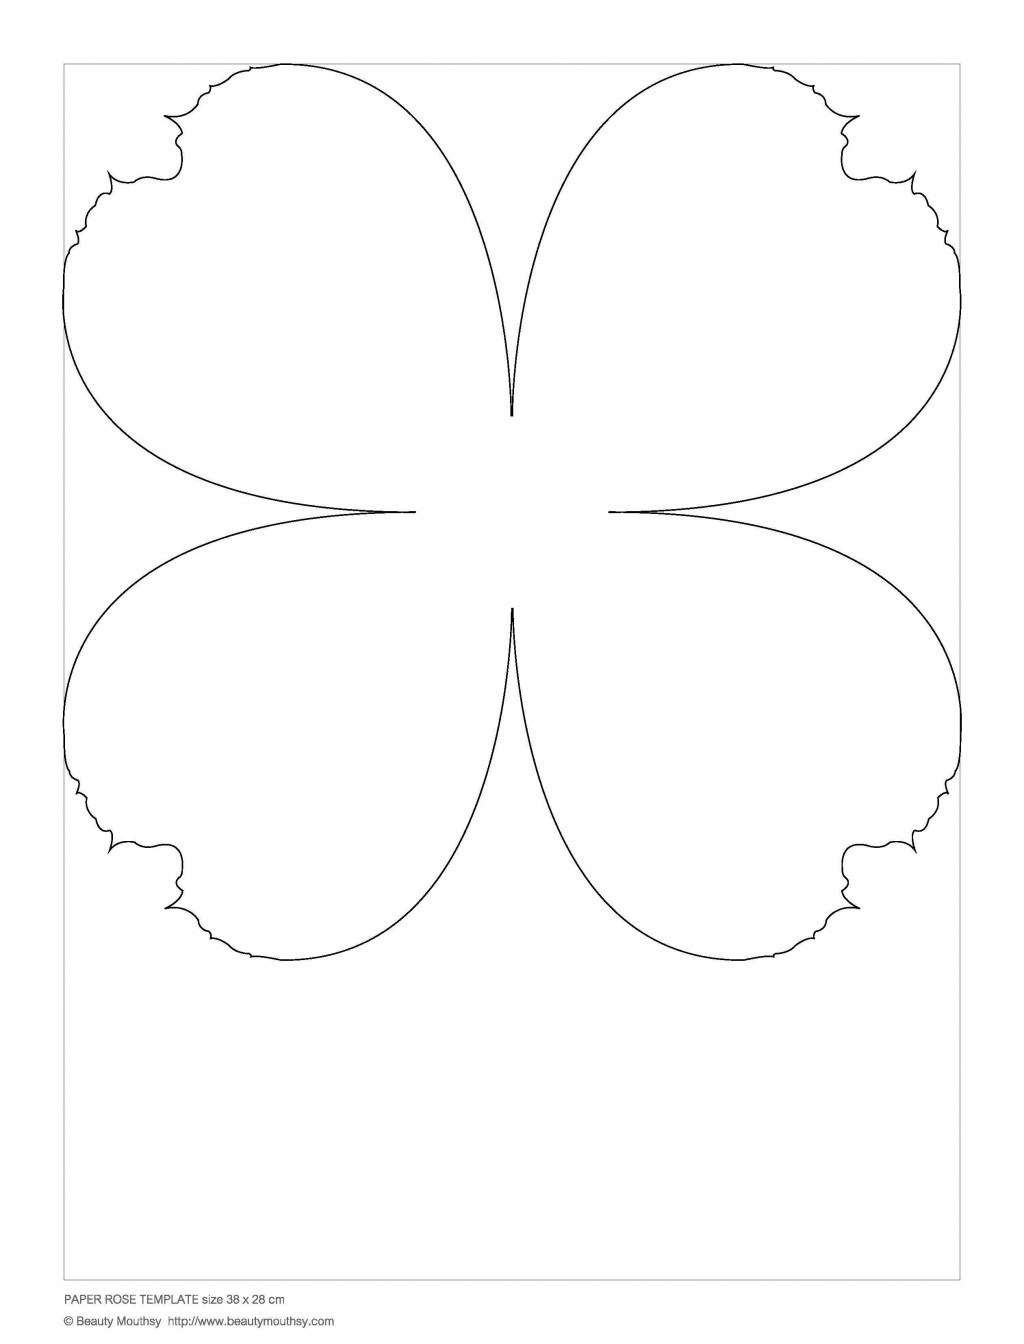 002 Simple Free Small Paper Flower Petal Template Highest Clarity  TemplatesLarge